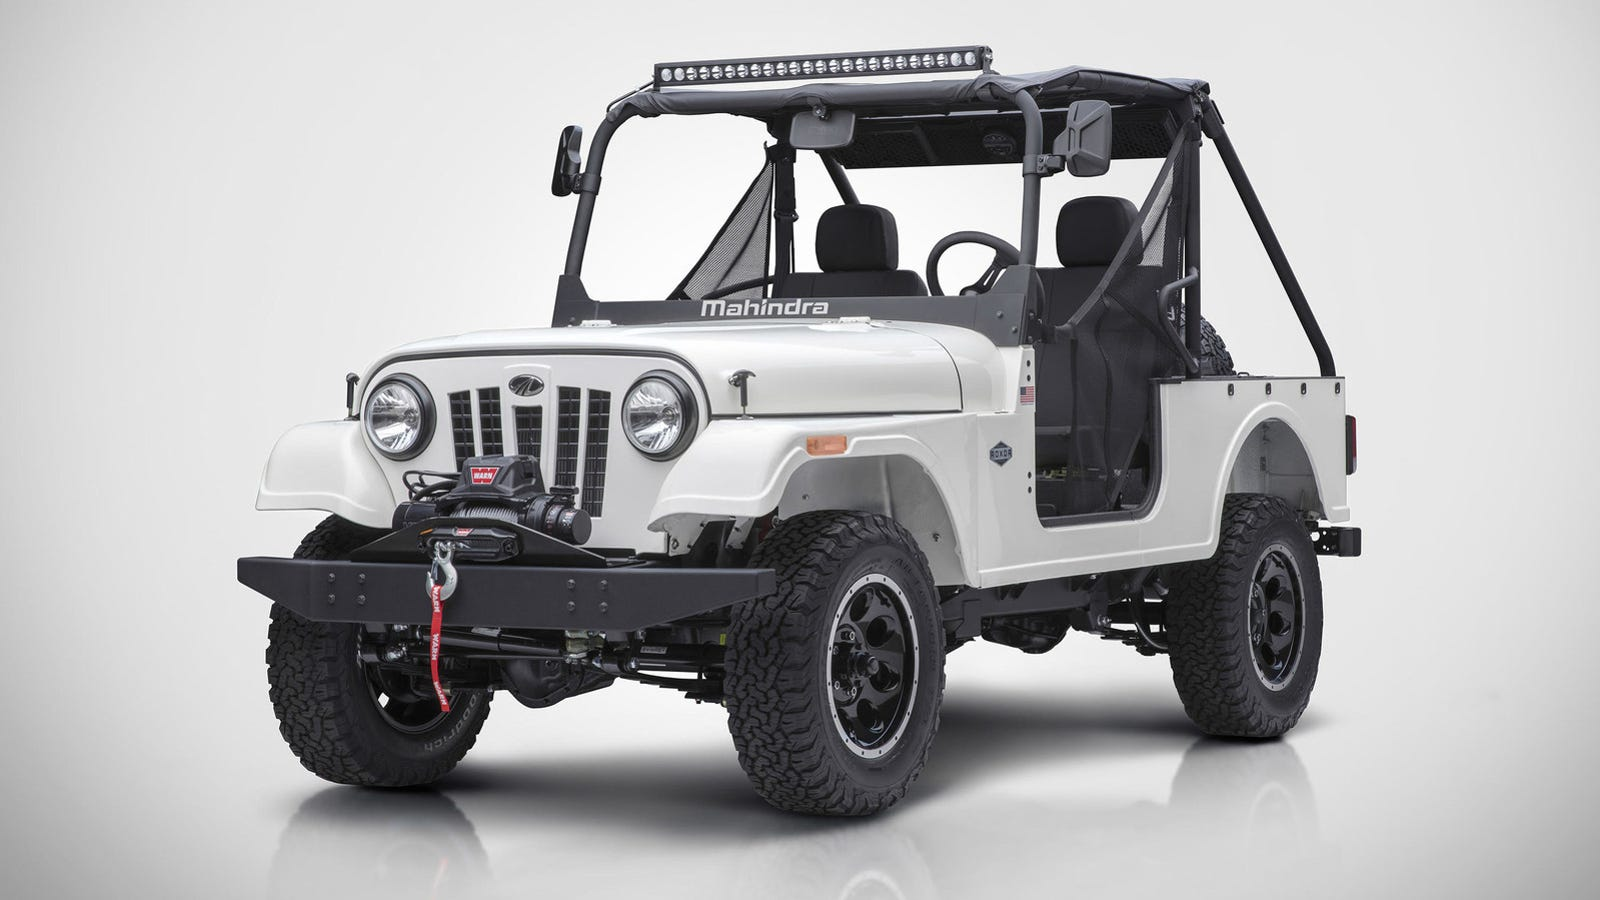 Jeep History And Information Offroaders Com >> The Mahindra Roxor Is A Tiny Offroad Jeep That You Can Totally Buy